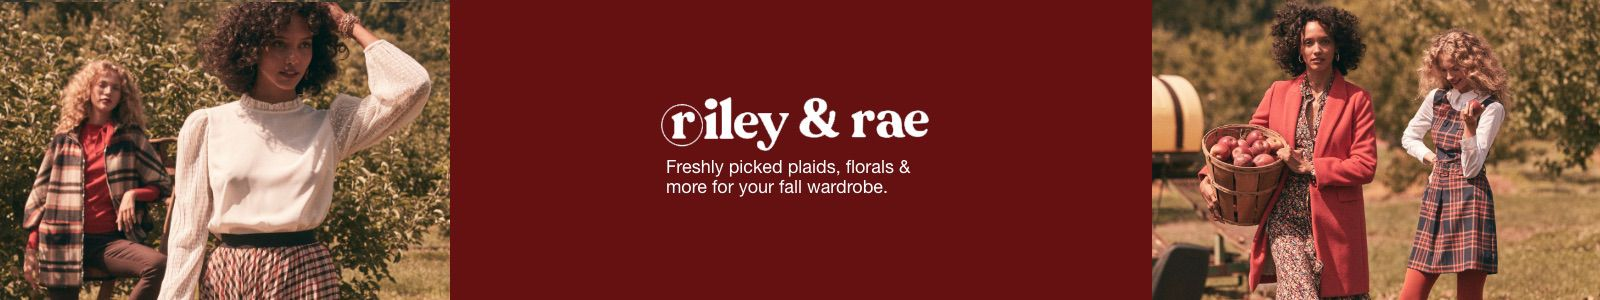 riley and rae, Freshly picked plaids, florals and more for your fall wardroble